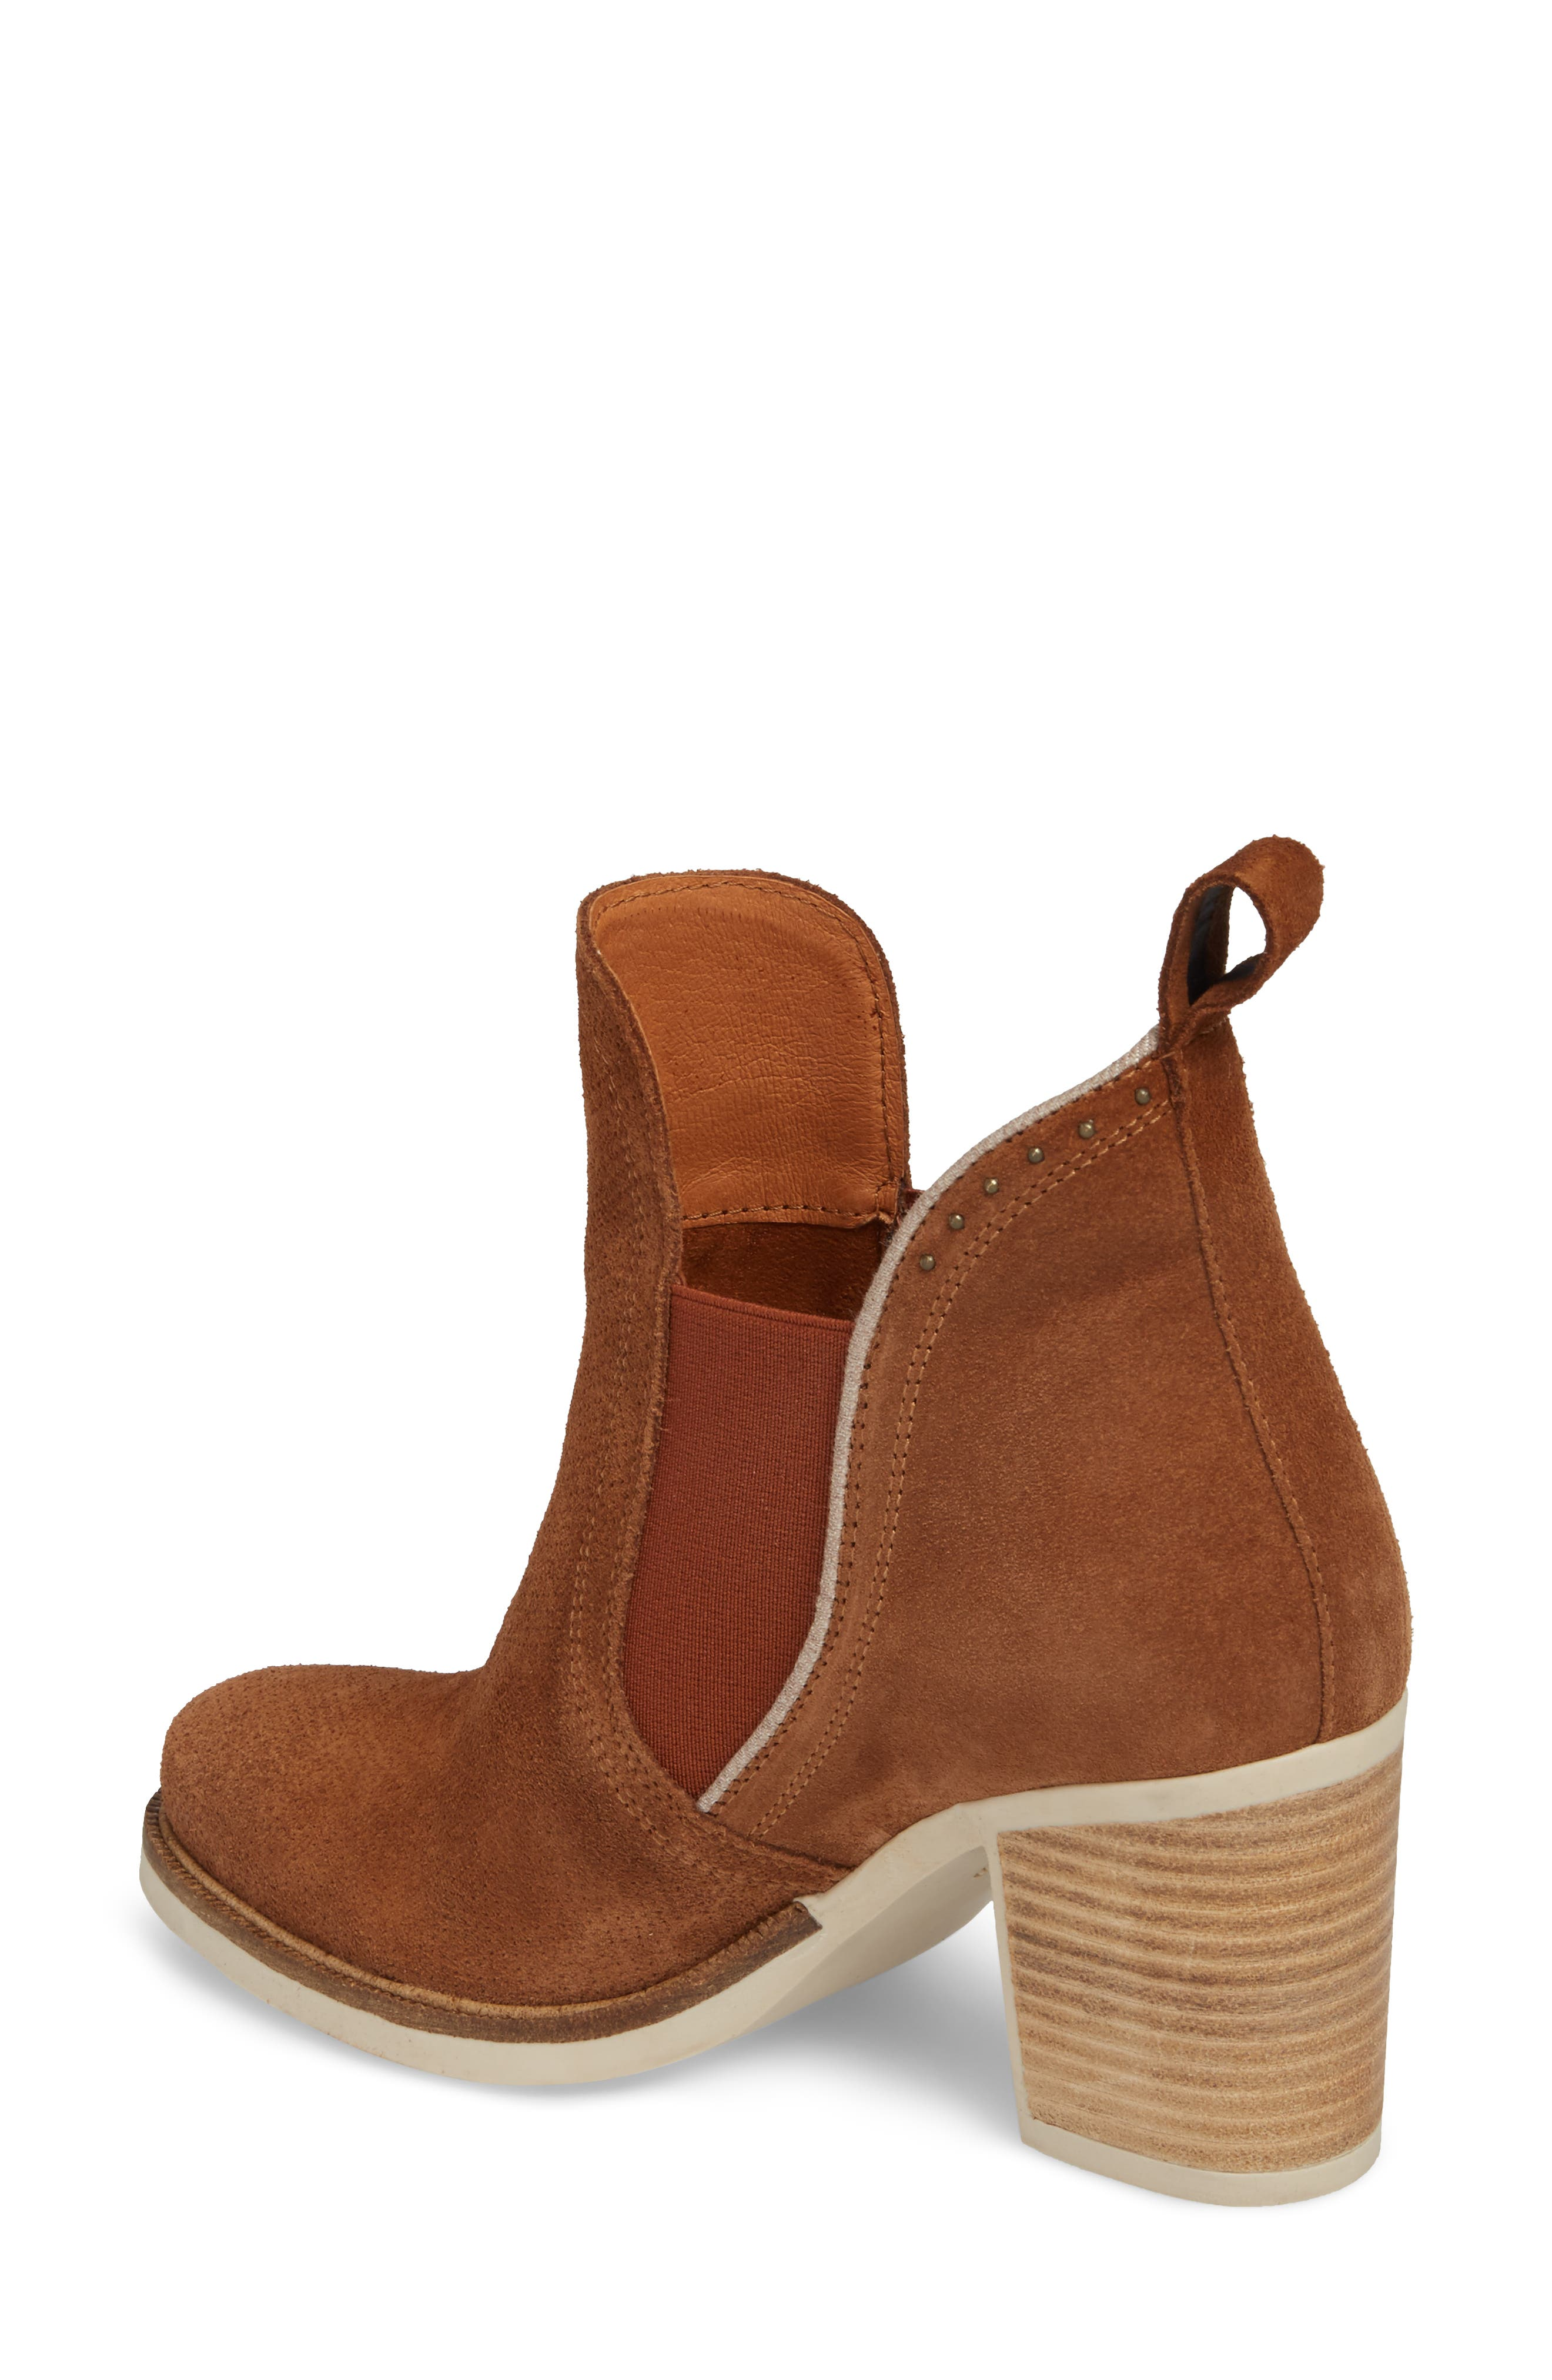 Breves Boot,                             Alternate thumbnail 2, color,                             WHISKY/ BEIGE SUEDE